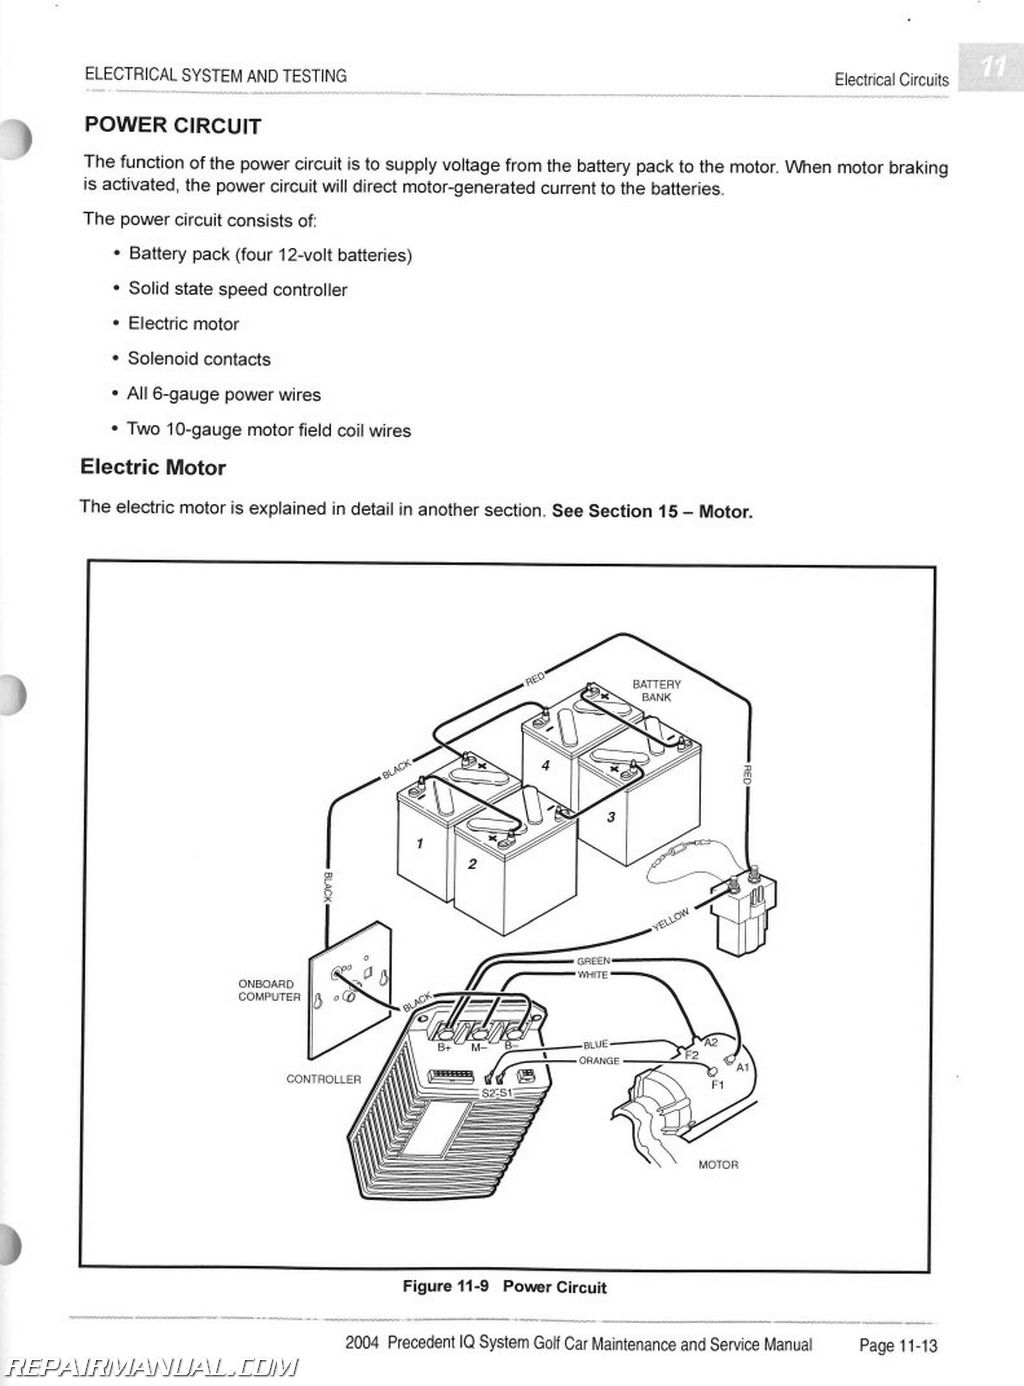 2004 Ezgo Gas Wiring Diagram Great Design Of Workhorse Manual Carryall Centurion Chevrolet 36v Golf Cart